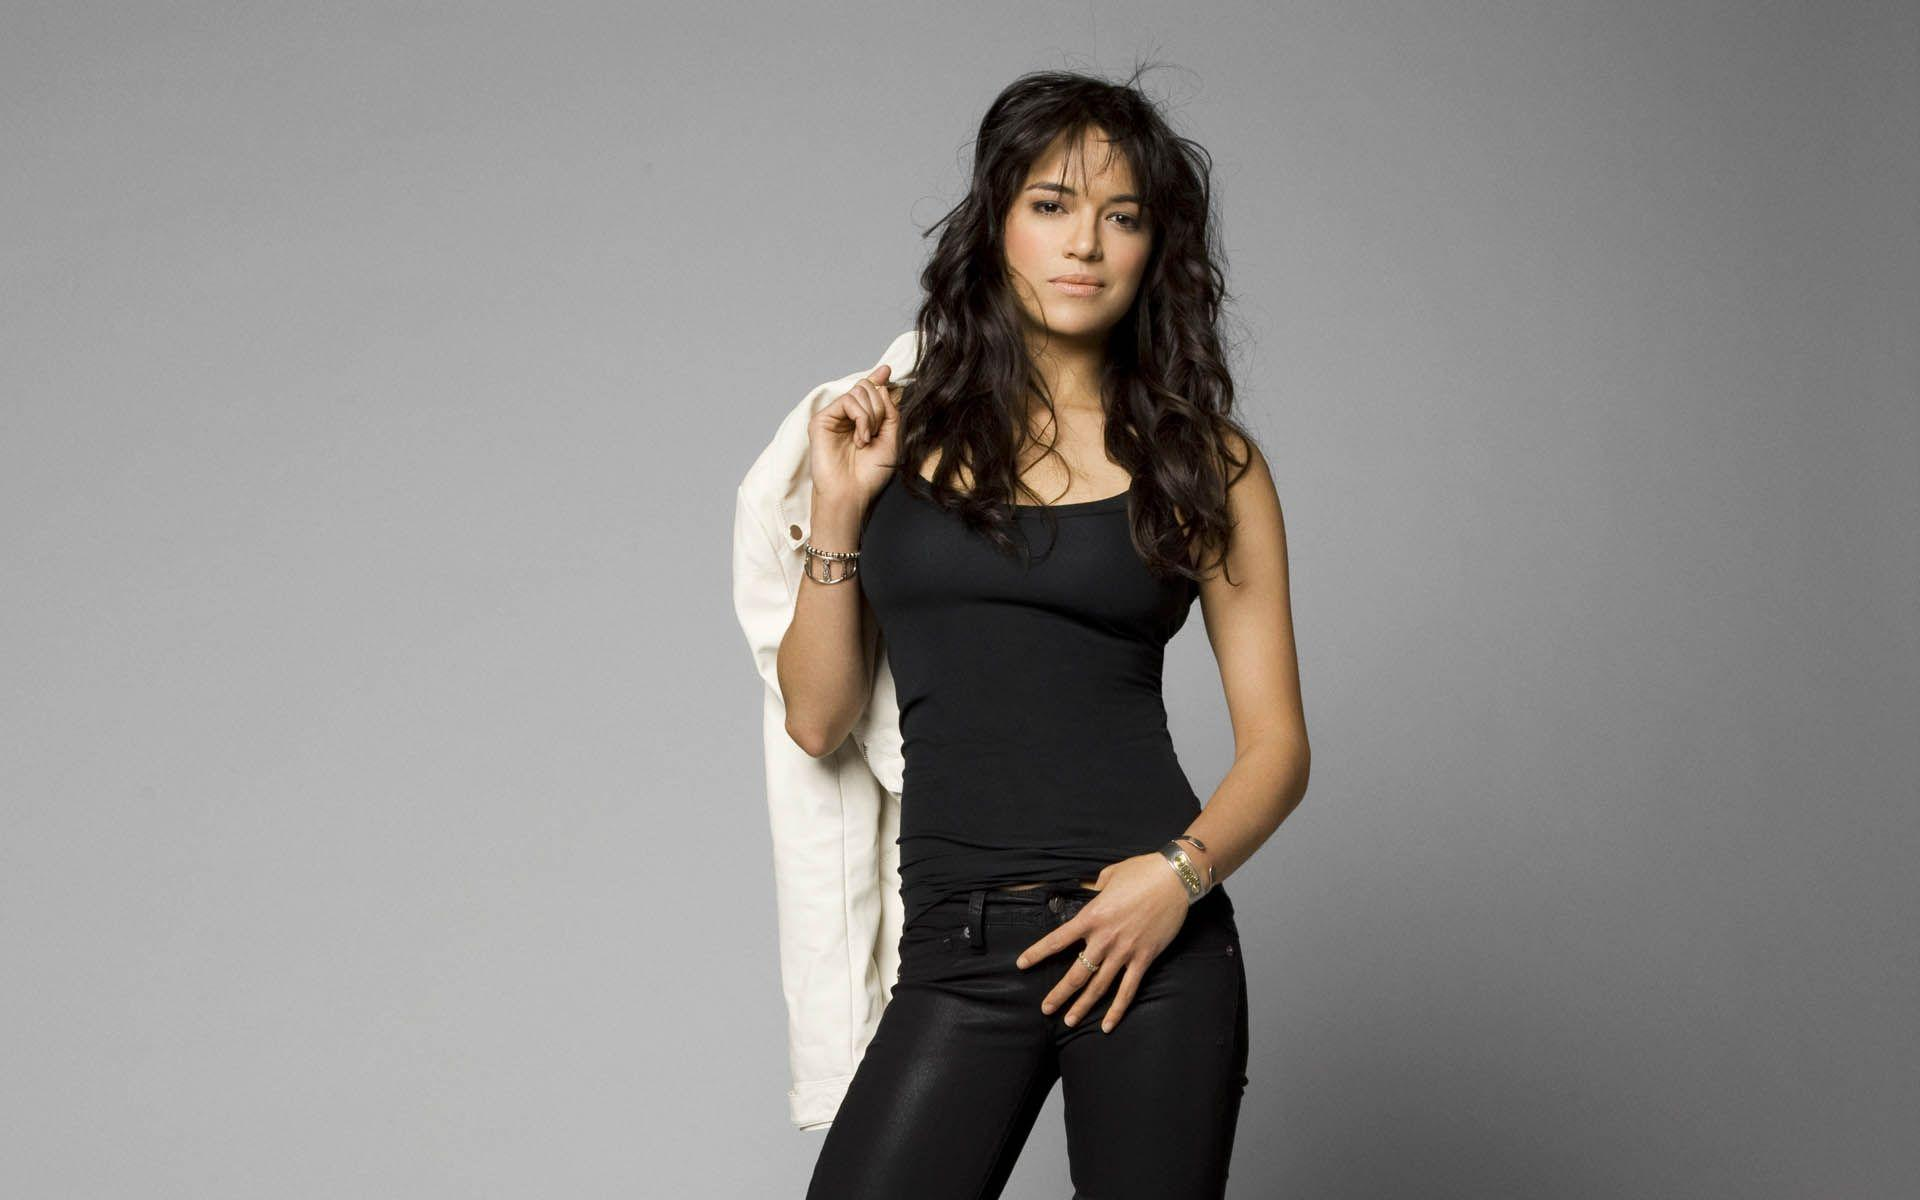 1920x1200 - Michelle Rodriguez Wallpapers 2